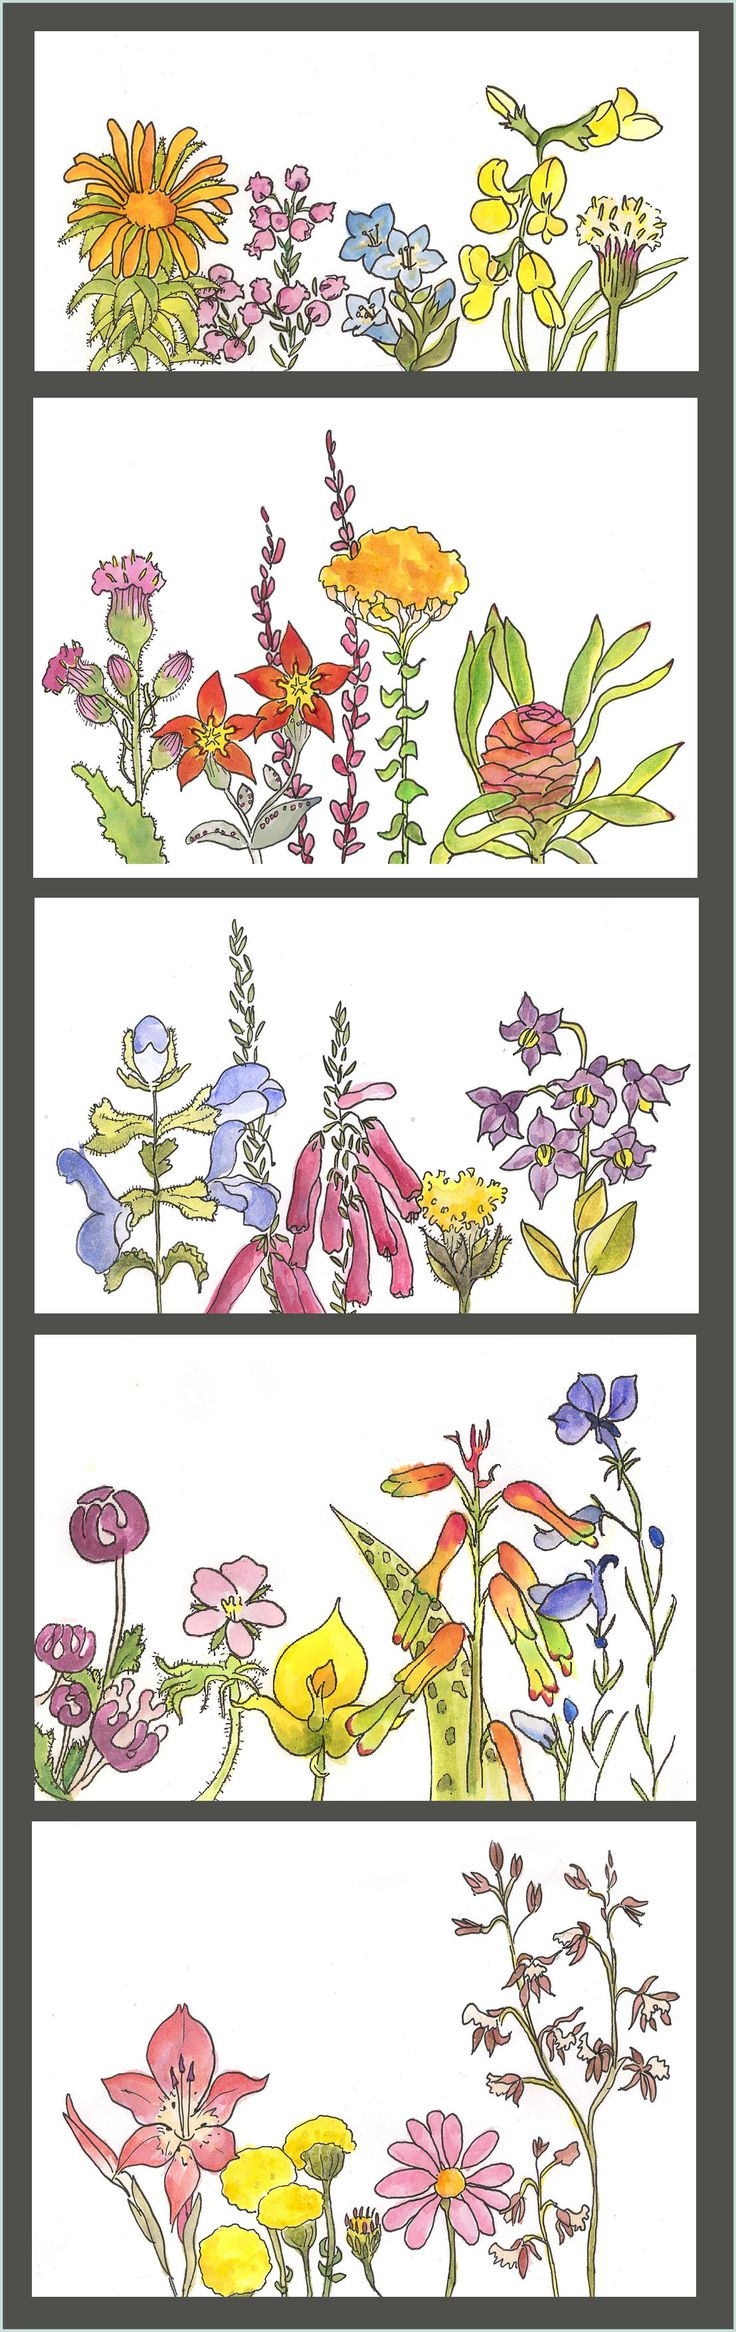 flowers flowers and more flowers - watercolour and ink - for Clip Clop illustrations